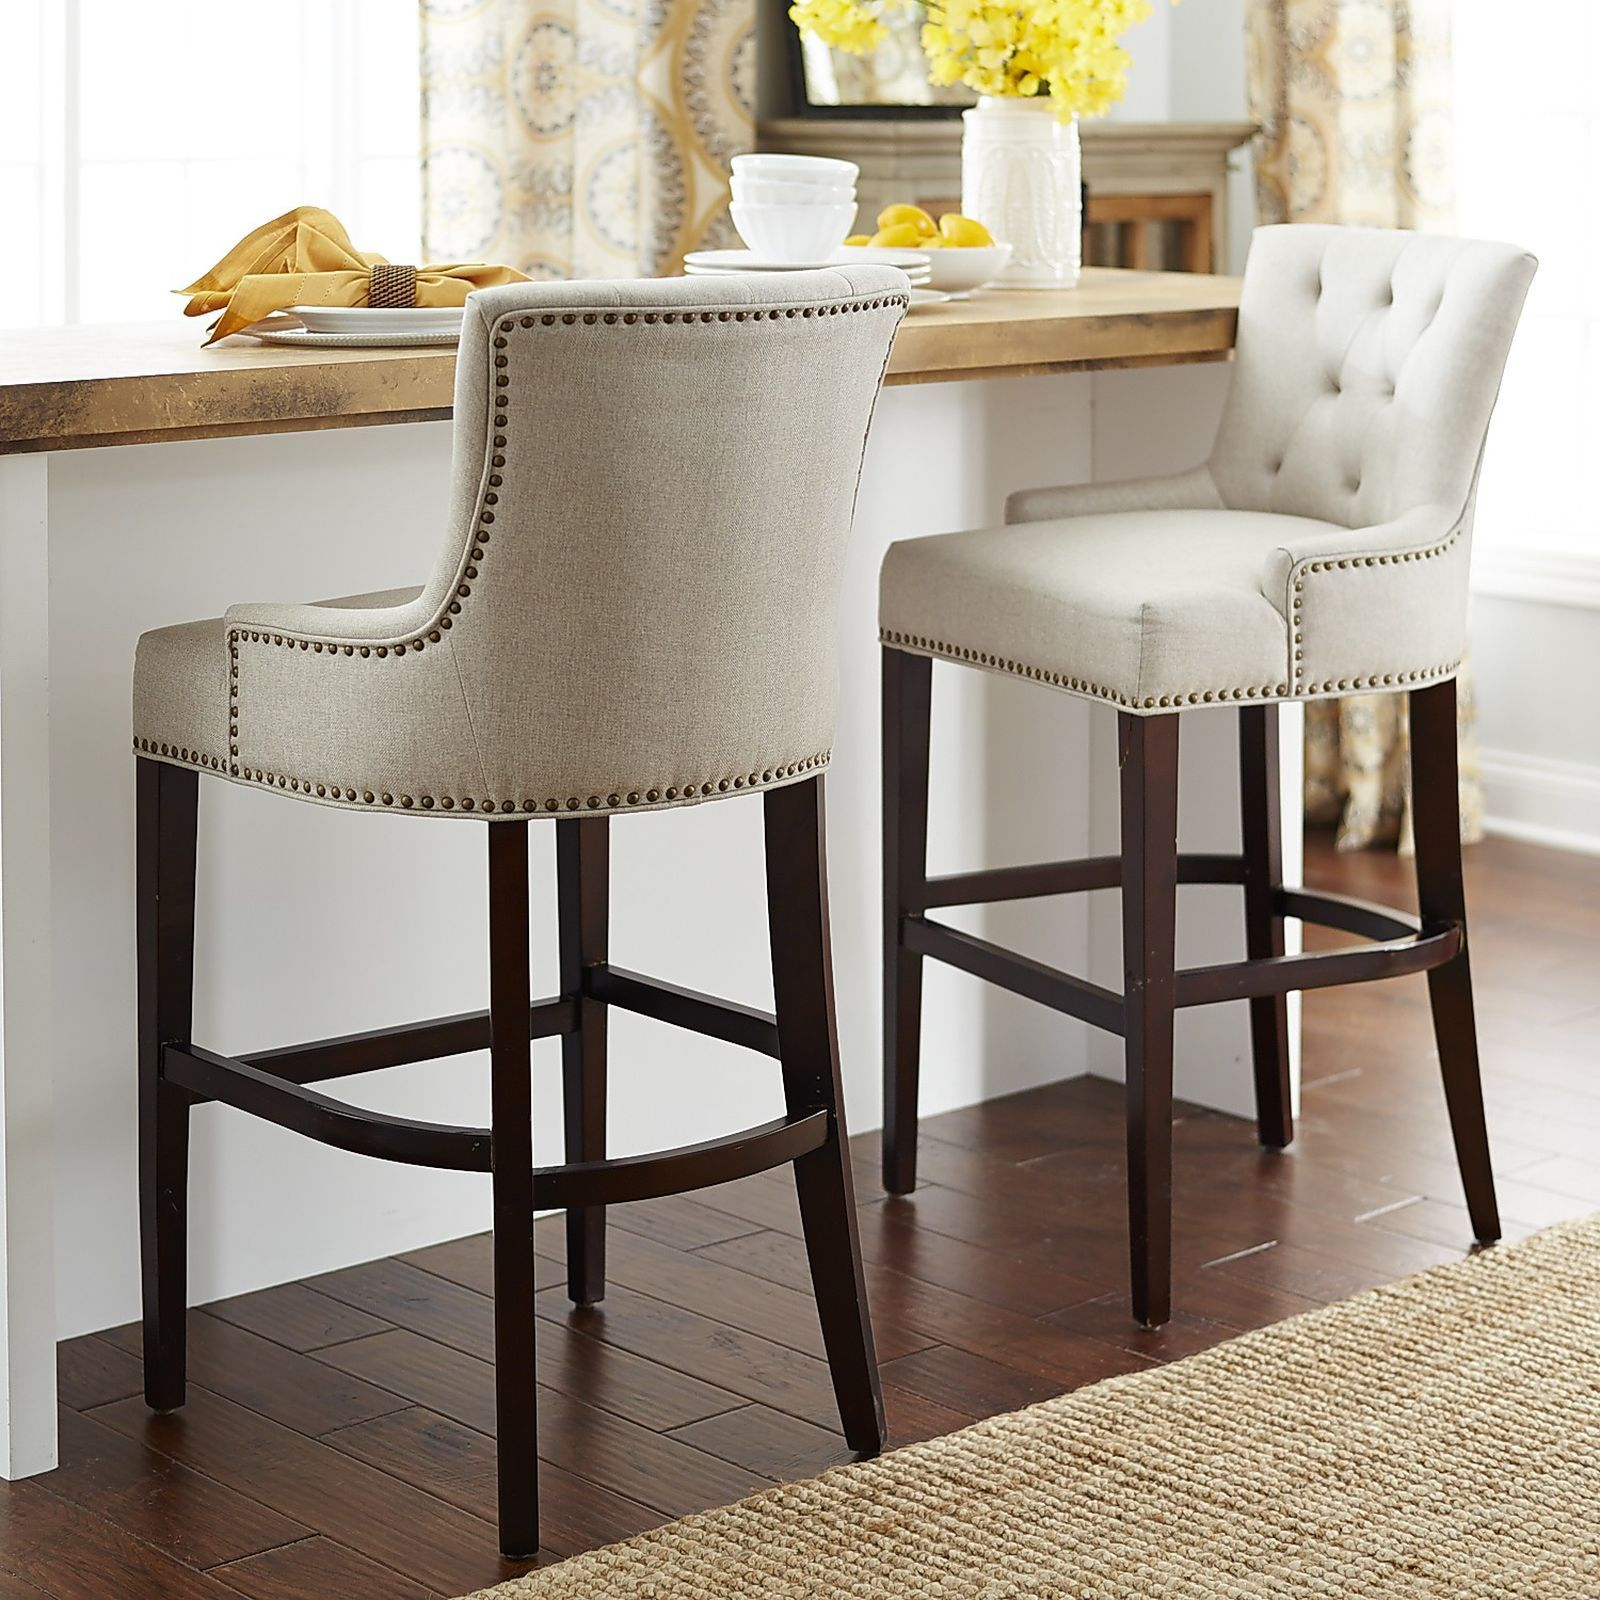 Ava Bar Counter Stools Flax Pier 1 Imports With Images